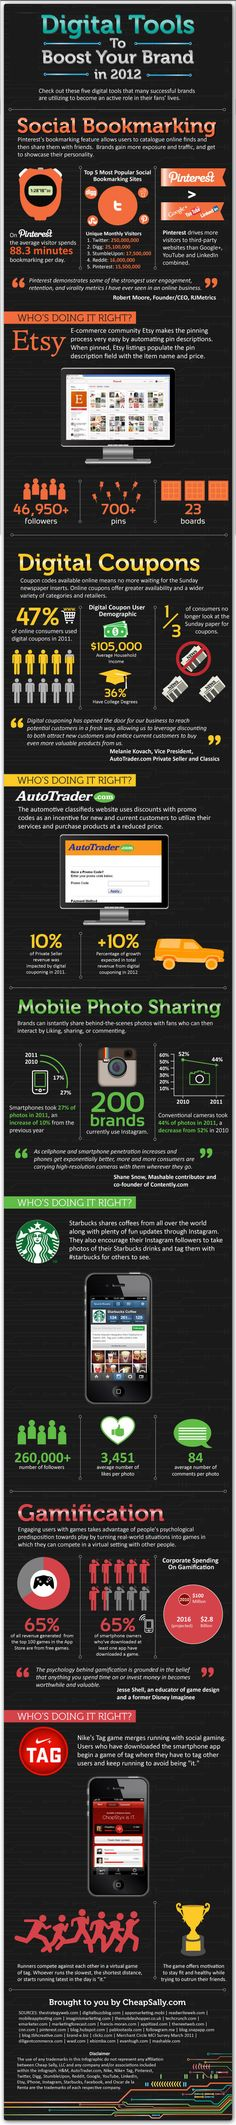 2012 Digital Tools to Boost Brand - Social Bookmarking - E-commerce - Digital Coupons - Mobile Photo Sharing - Gamification Marketing En Internet, Inbound Marketing, Business Marketing, Online Marketing, Social Media Marketing, Online Business, Mobile Marketing, Marketing Tools, Street Marketing